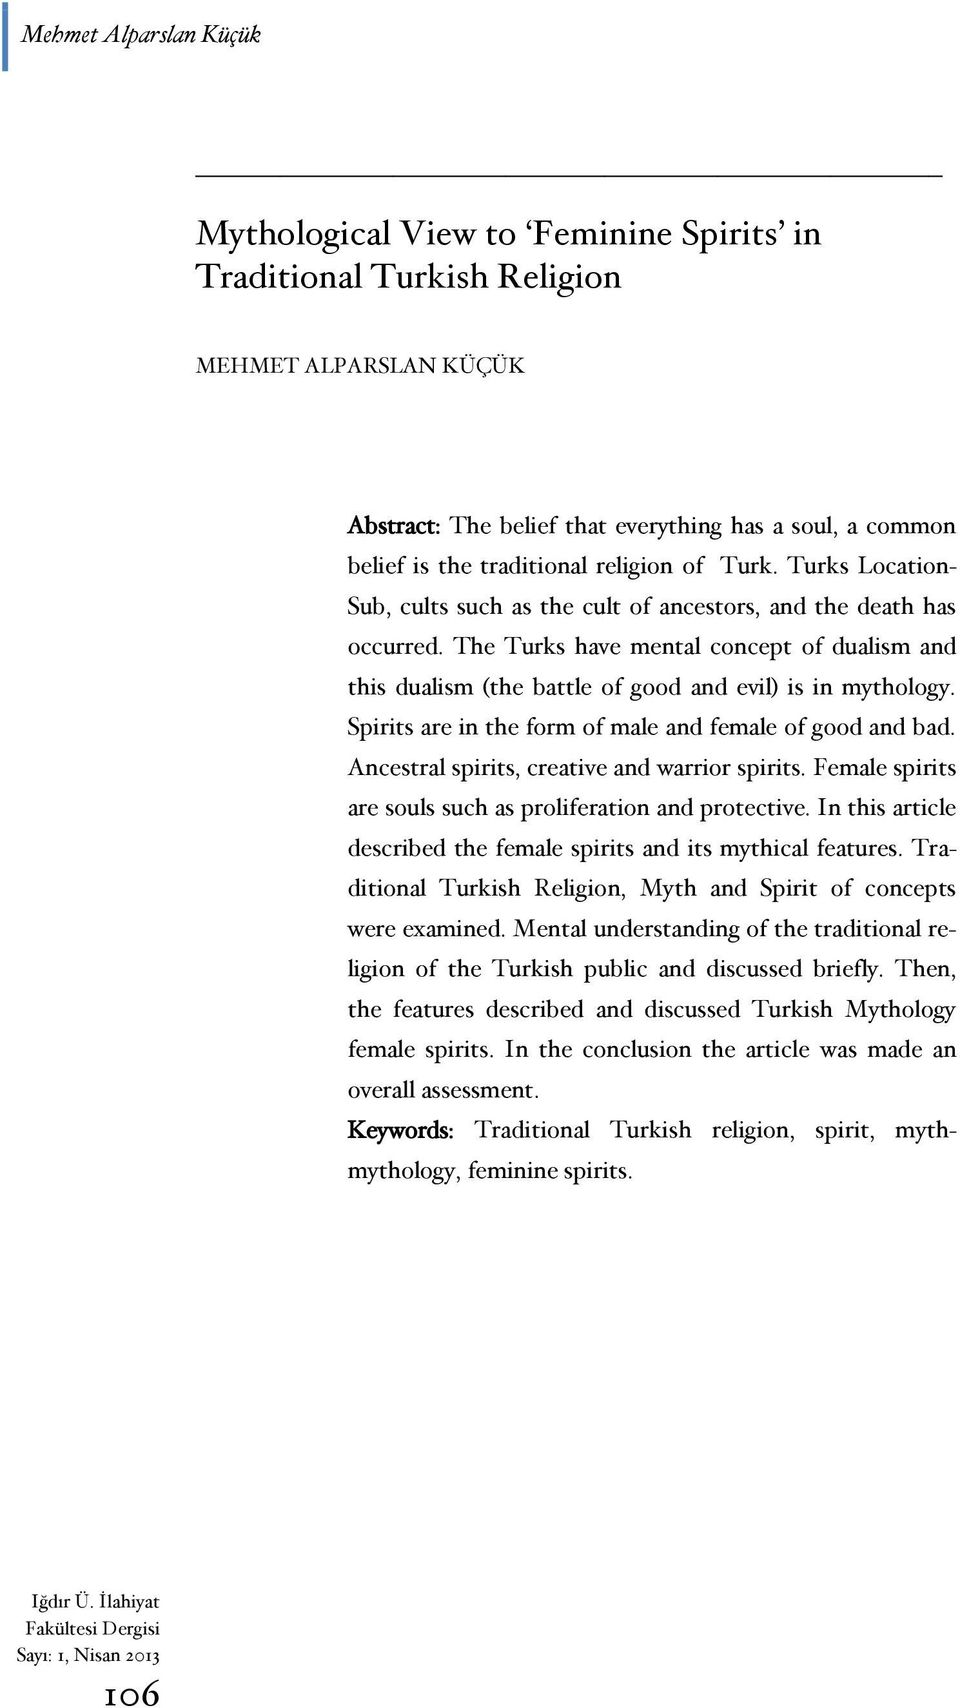 The Turks have mental concept of dualism and this dualism (the battle of good and evil) is in mythology. Spirits are in the form of male and female of good and bad.